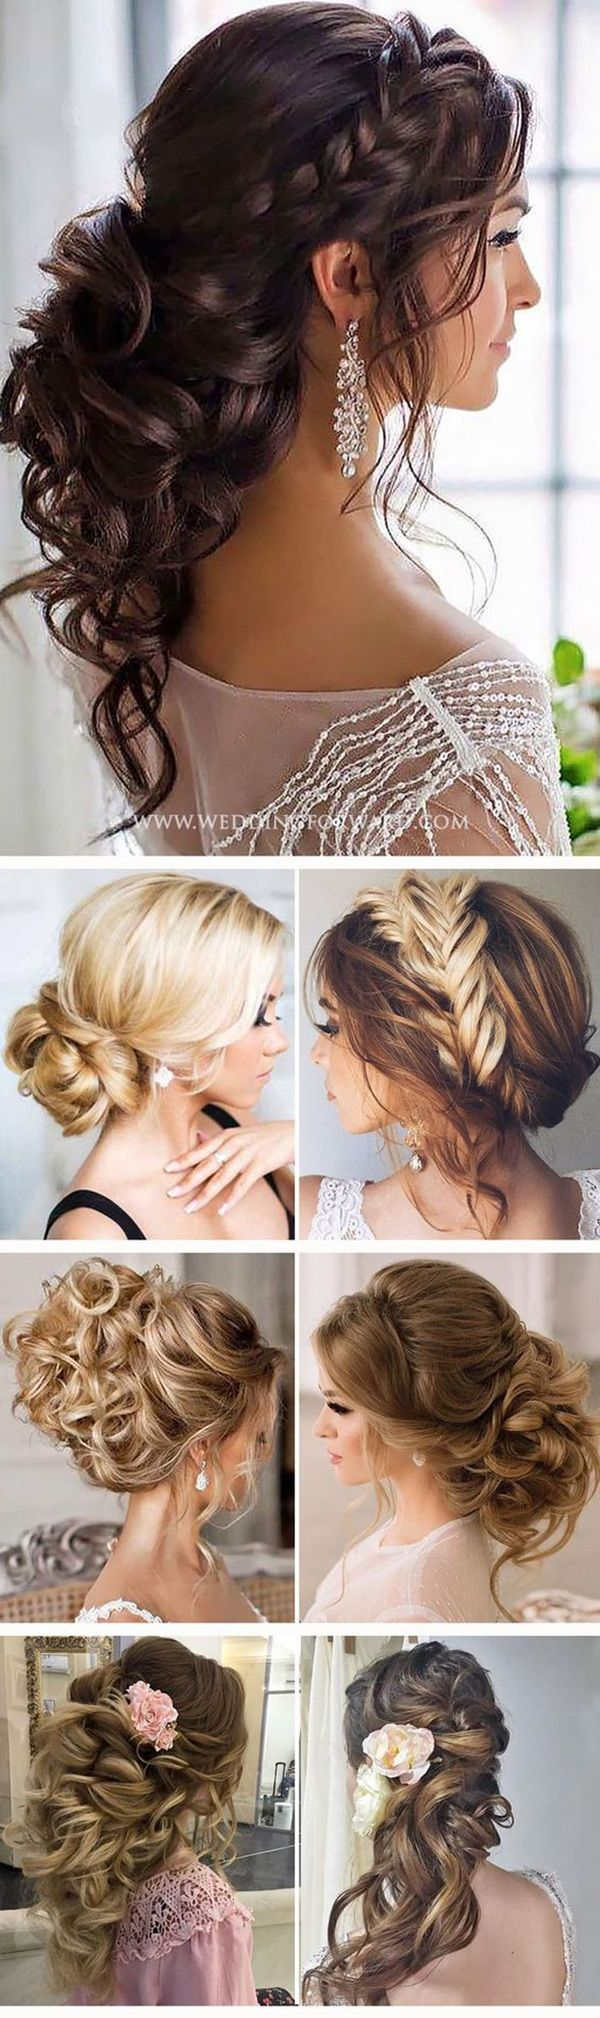 best 25+ long wedding hairstyles ideas on pinterest | long formal